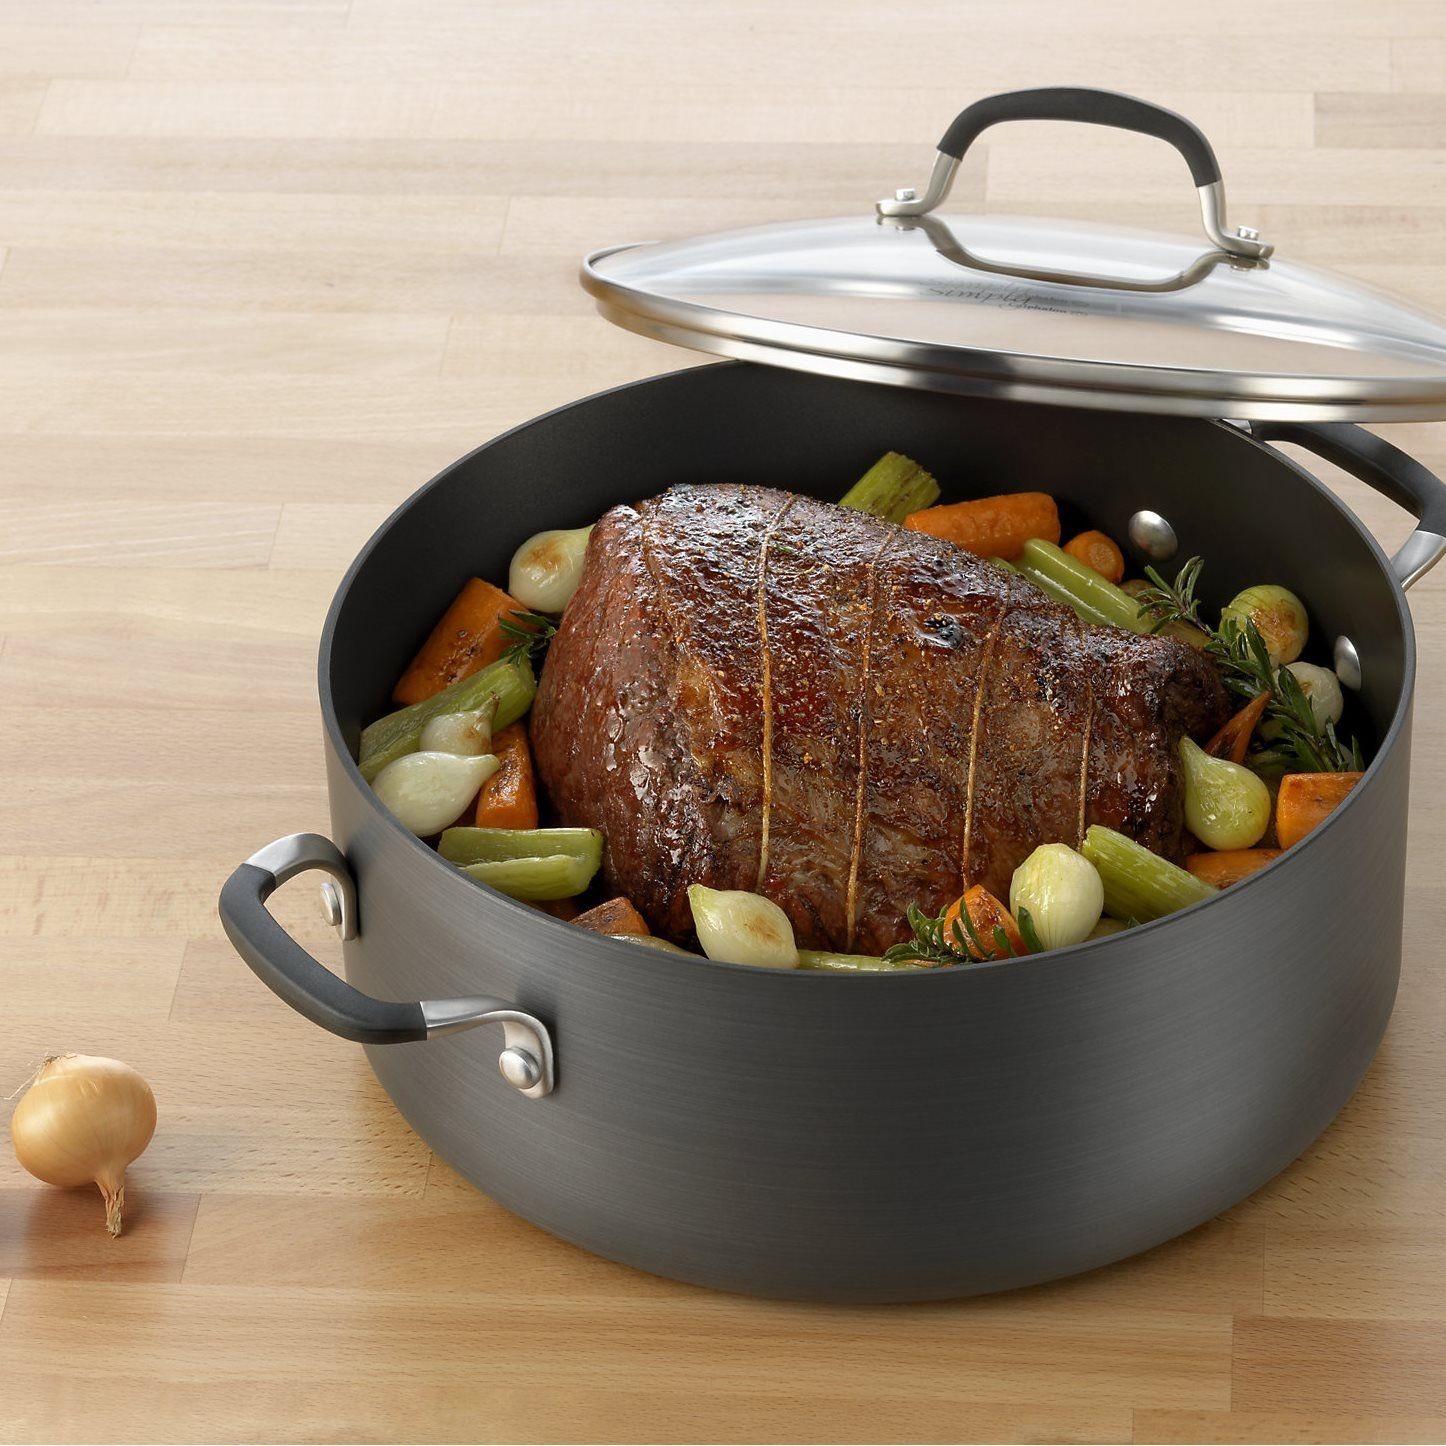 Simply Calphalon Nonstick 7qt. Dutch Oven and Cover